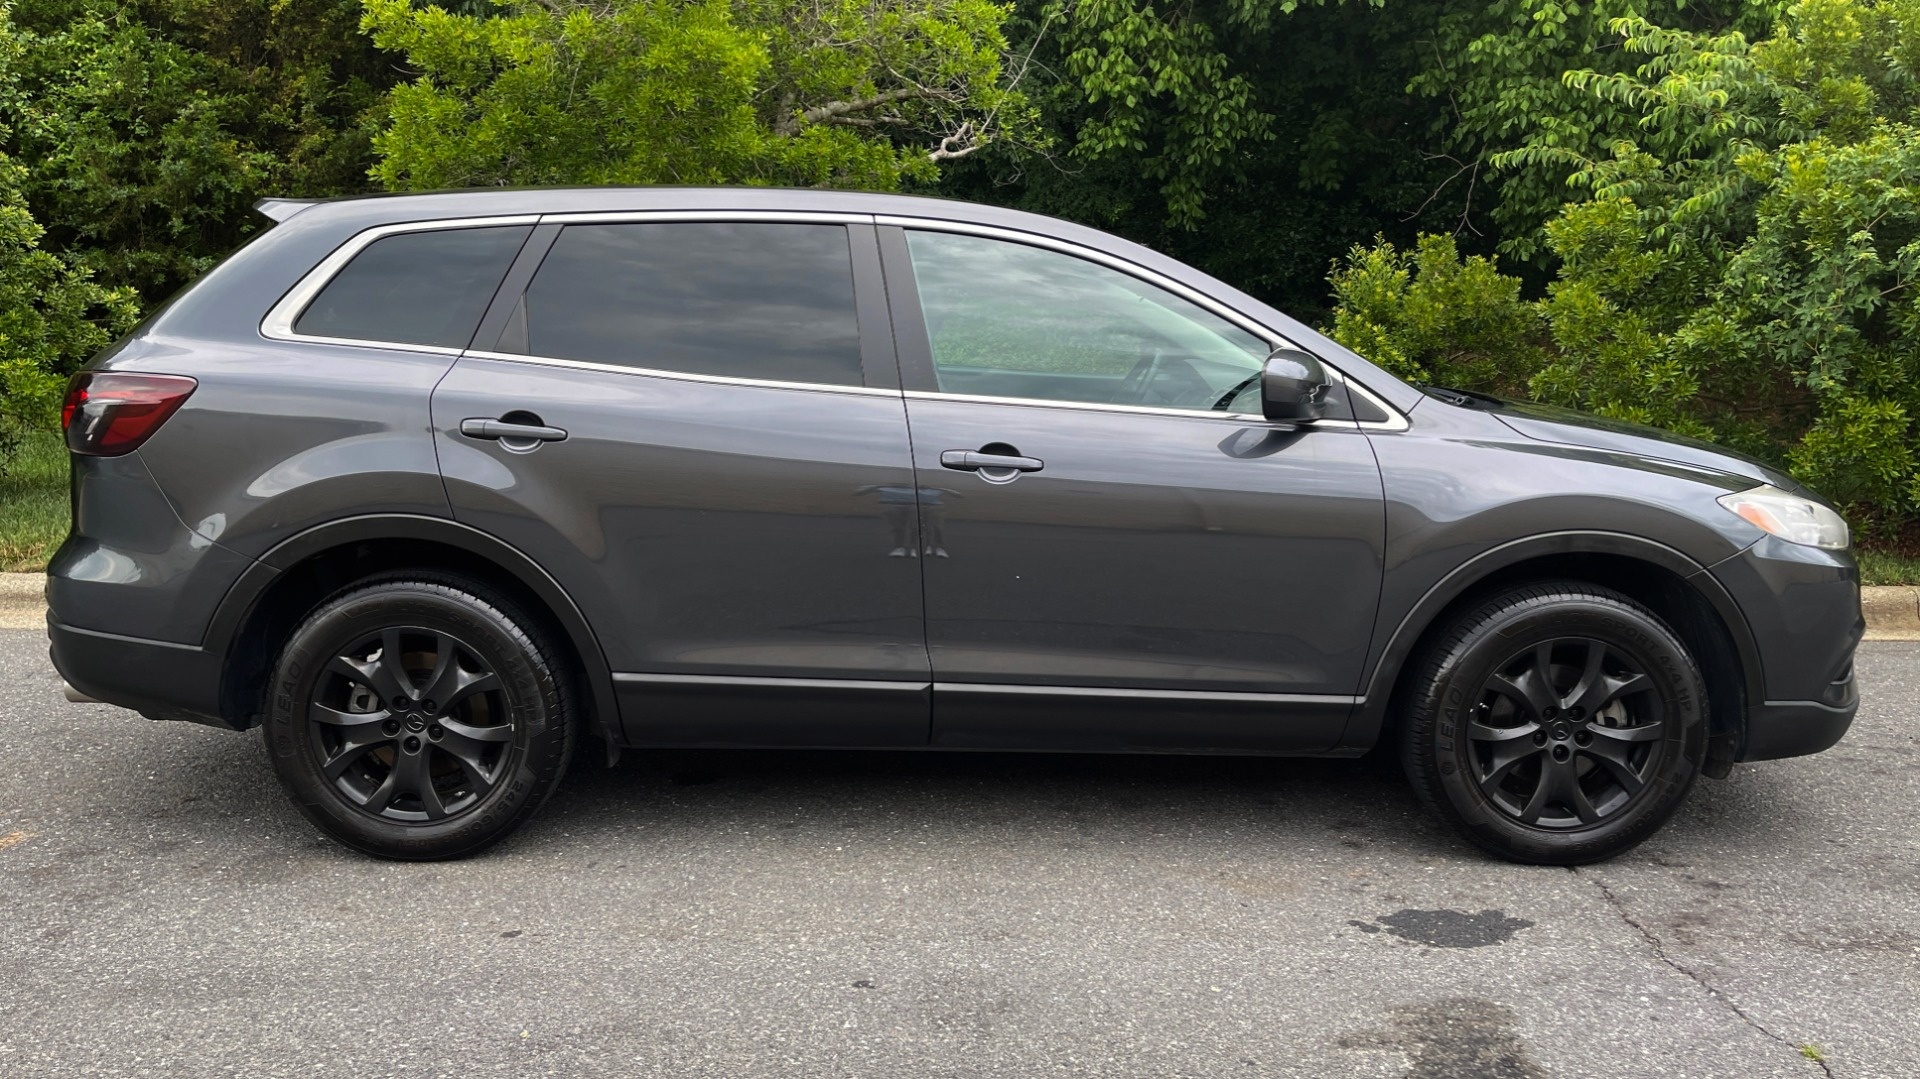 Used 2014 Mazda CX-9 TOURUNG / FWD / 3.7L V6 / 6-SPD AUTO / HTD STS / 3-ROW / REARVIEW for sale $14,995 at Formula Imports in Charlotte NC 28227 6